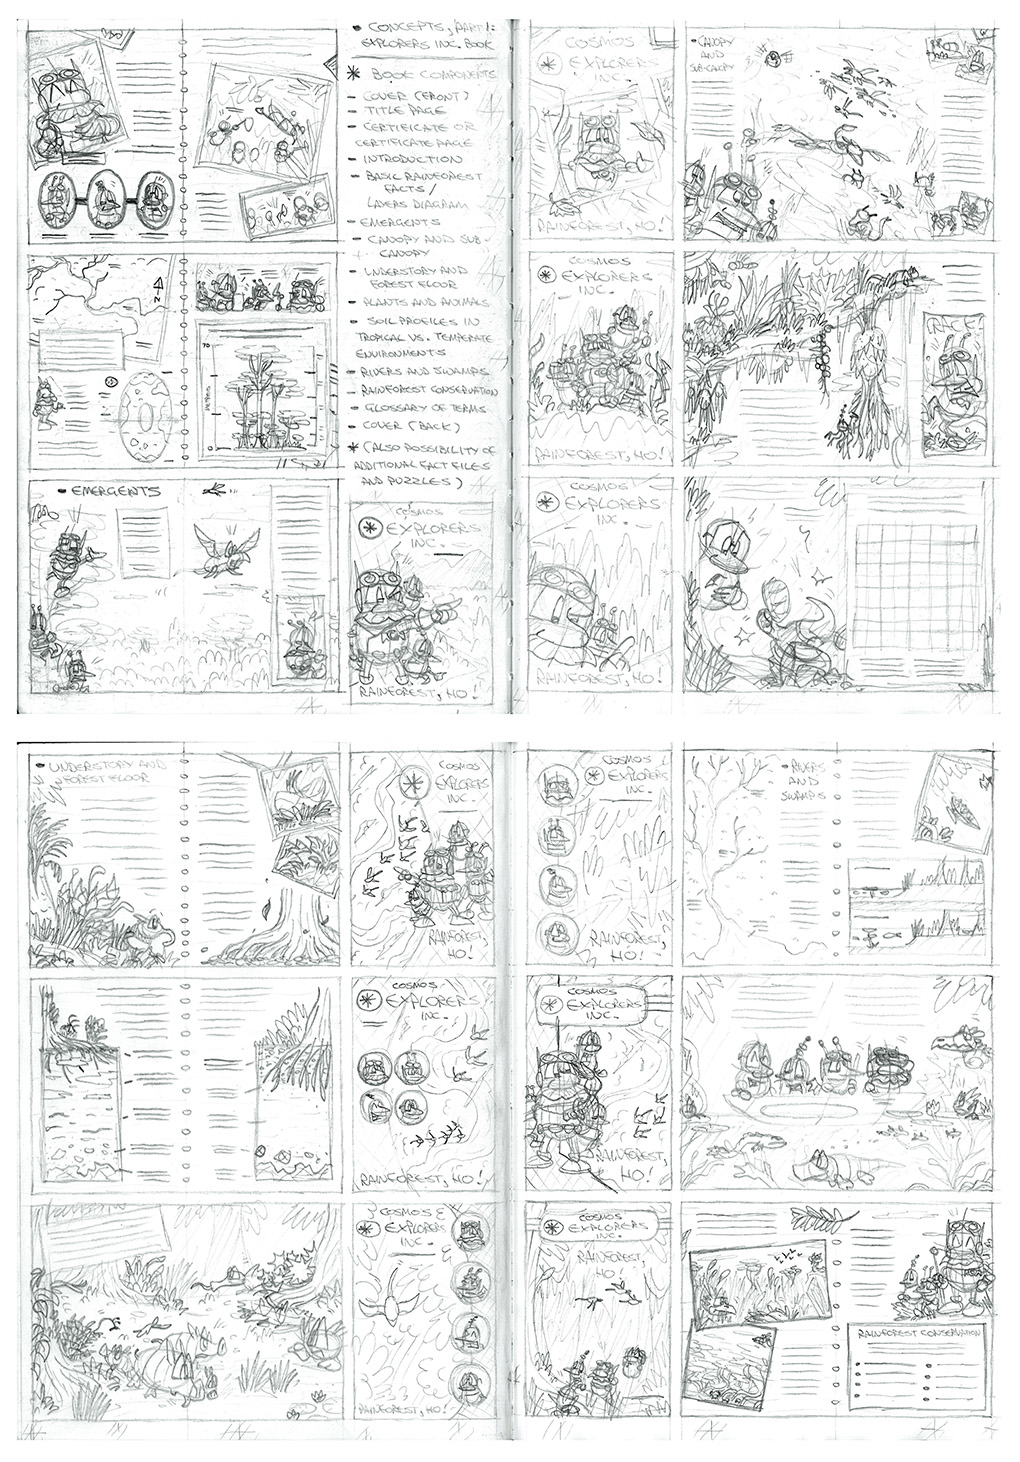 Adventure pack book concepts 1